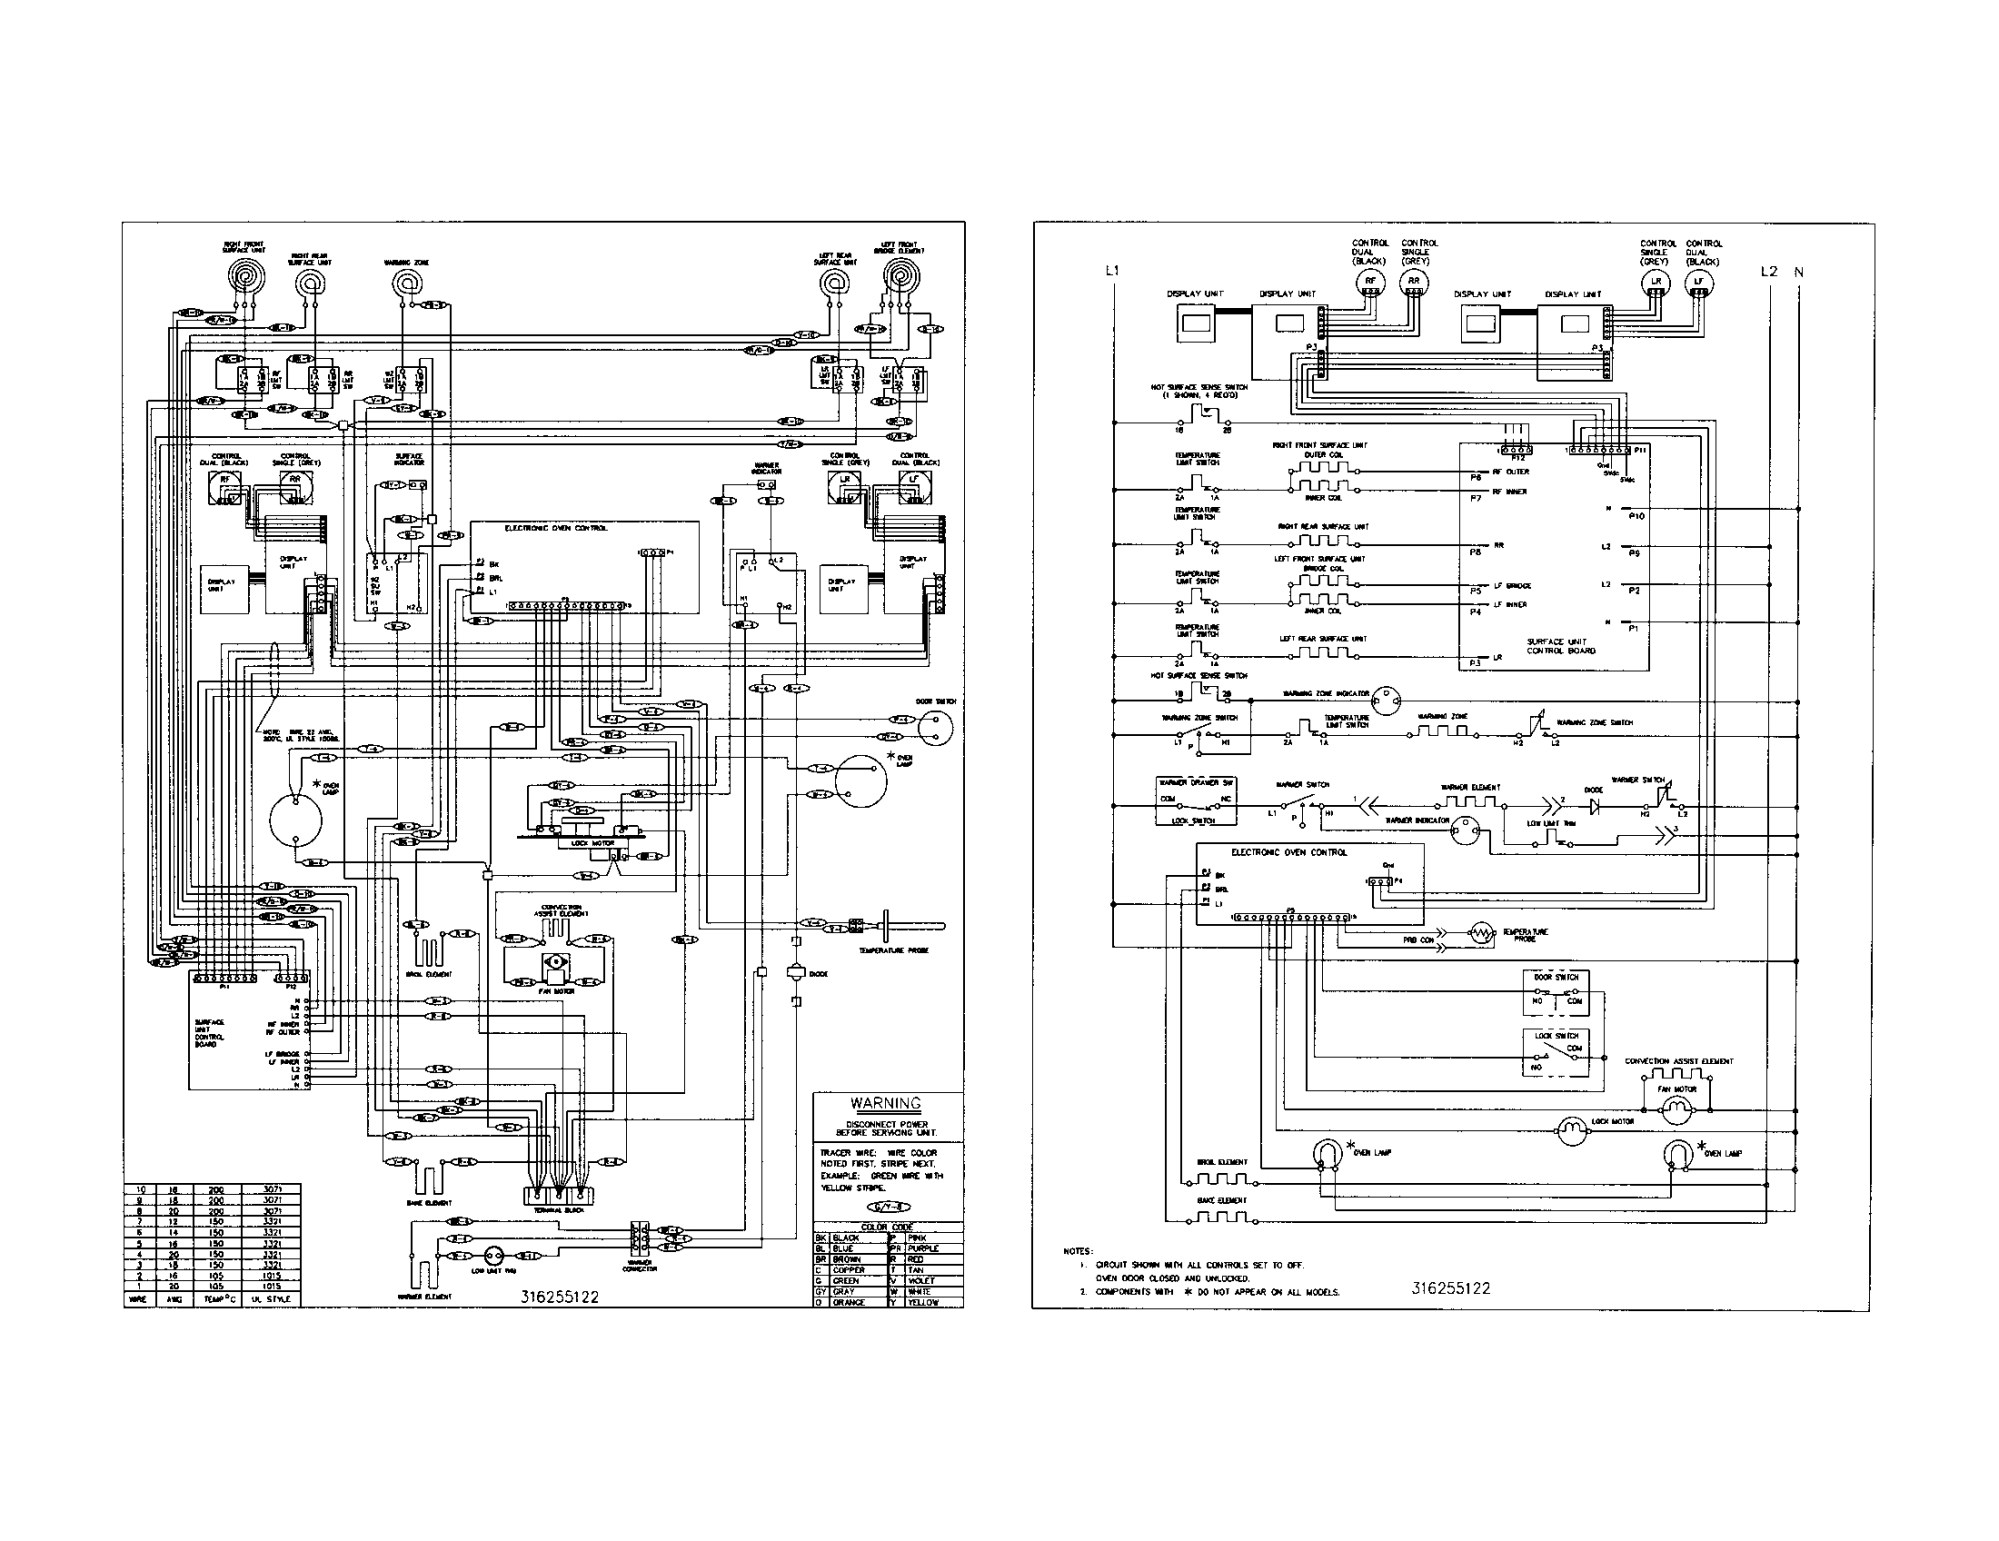 hight resolution of kenmore electric range wiring diagram kenmore elite electric range parts model sears outstanding wiring diagram